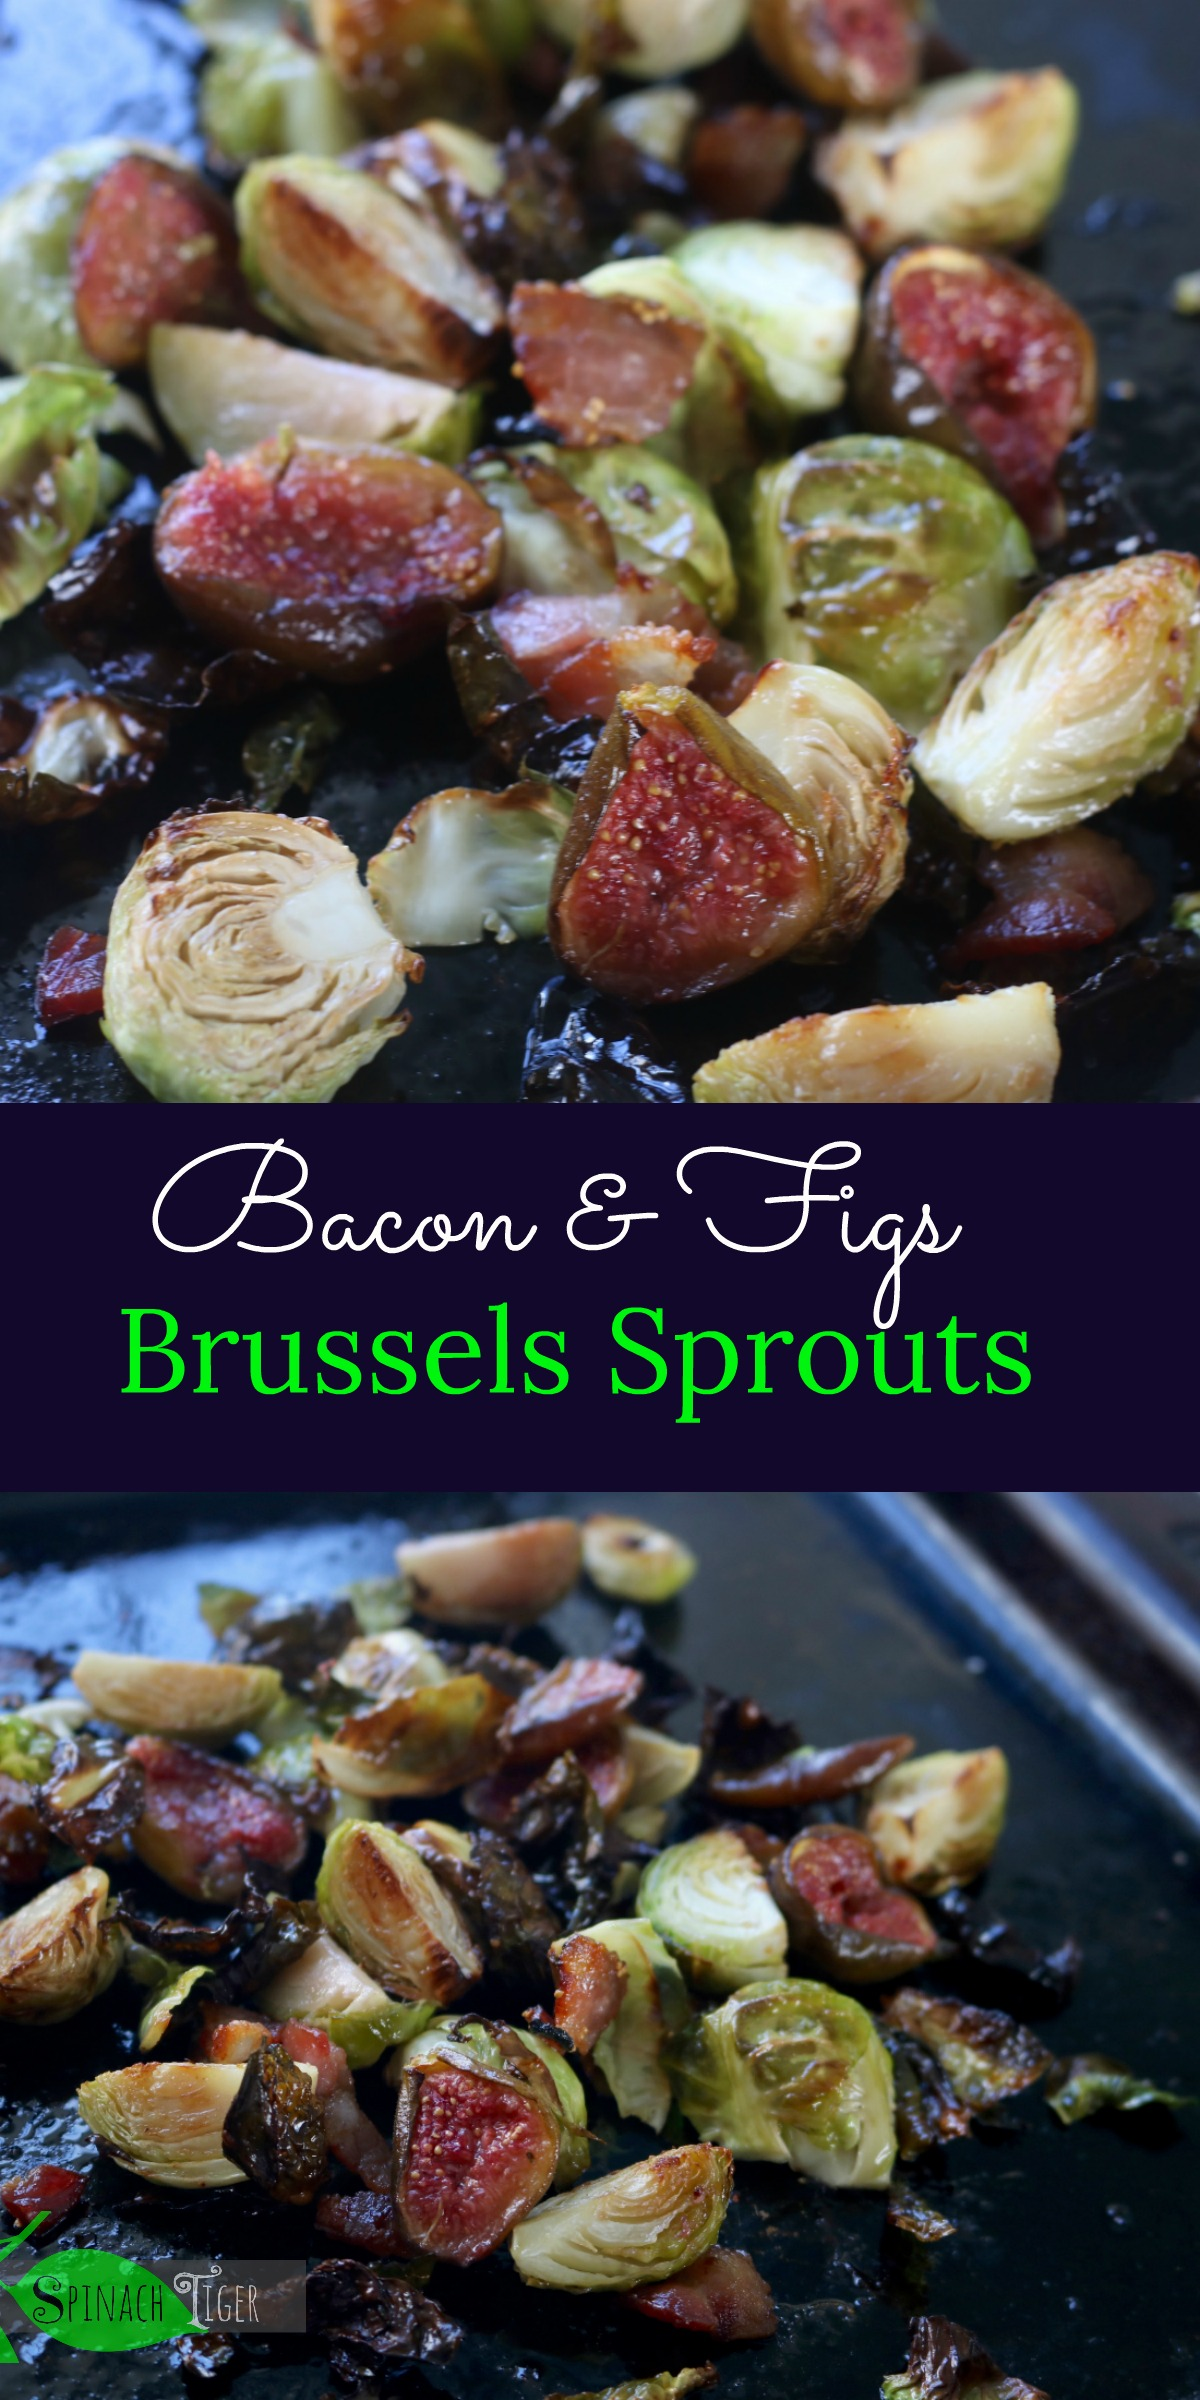 Tasty Brussels Sprouts Bacon Recipe from Spinach Tiger